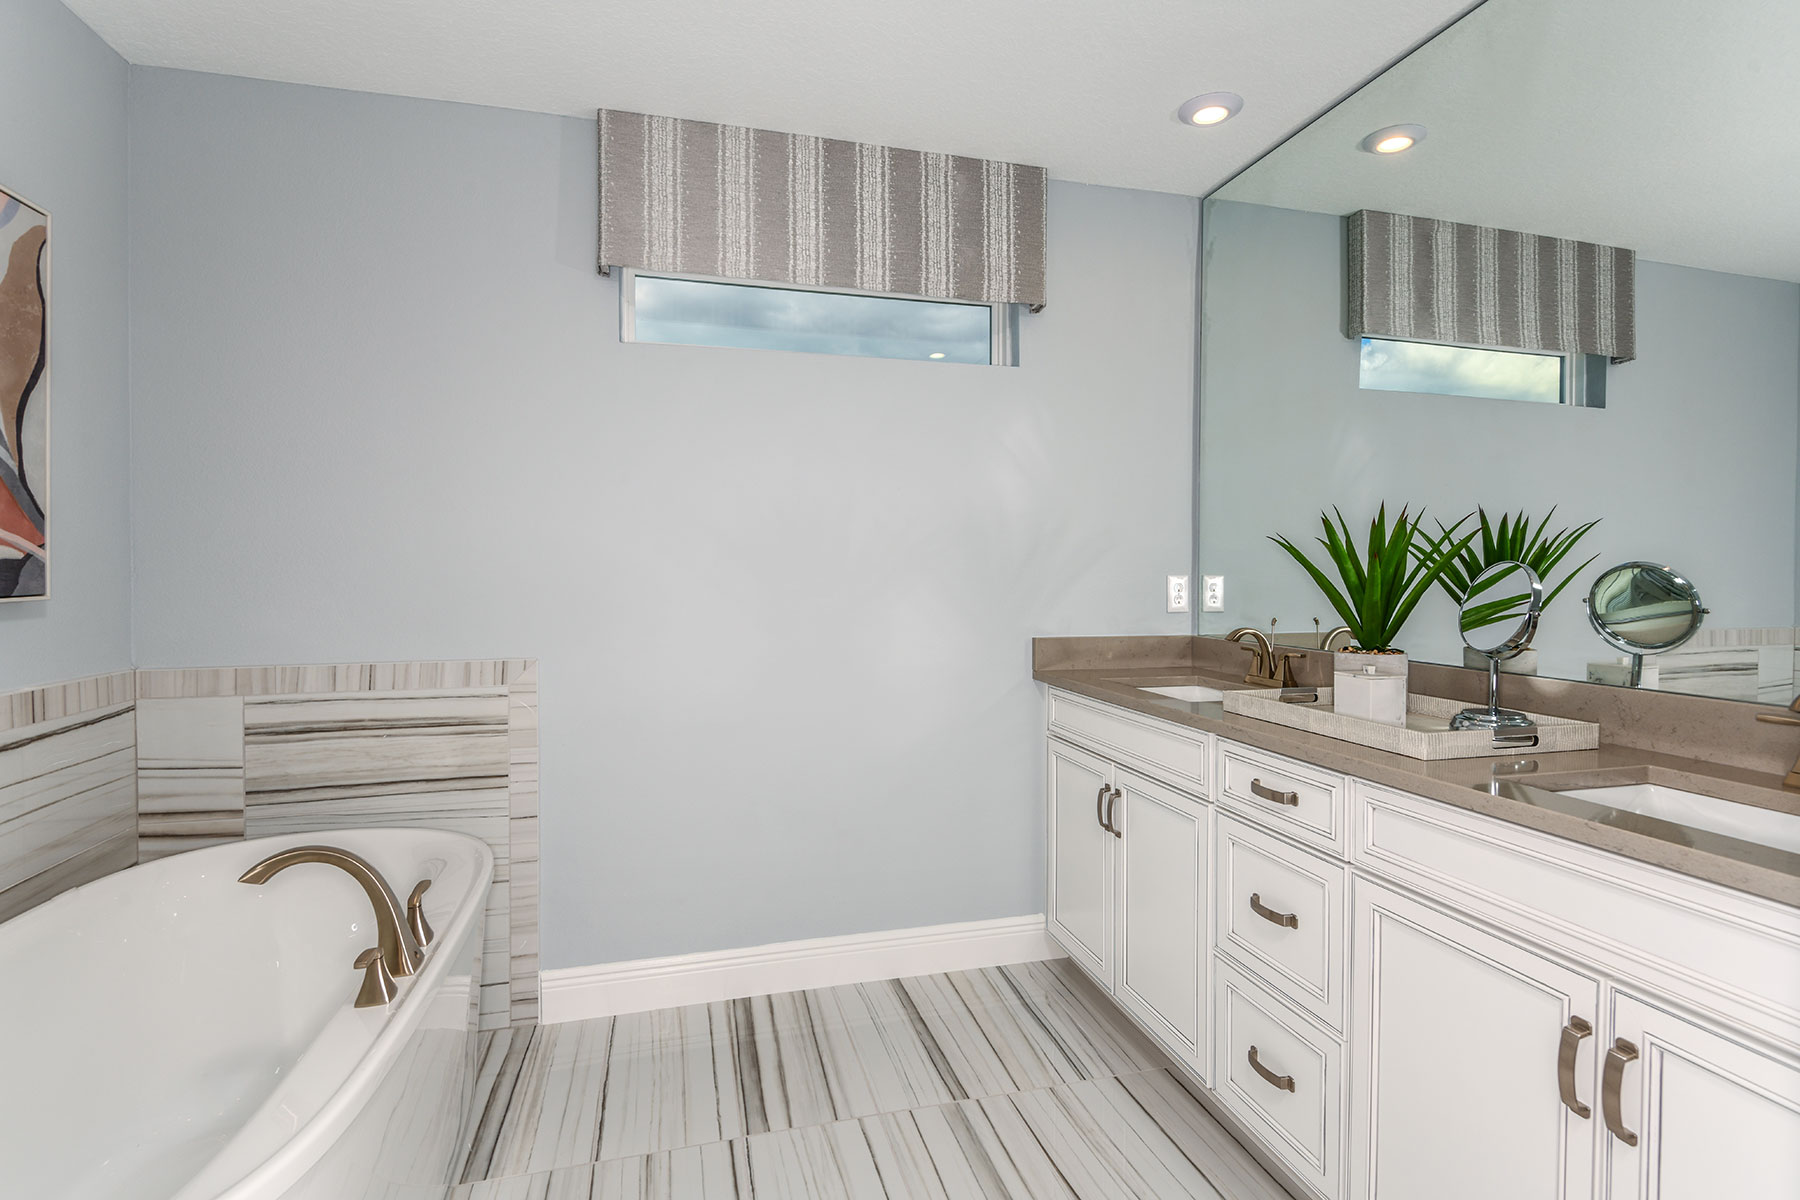 Myrtle Plan Bathroom_Master Bath at Parkview at Long Lake Ranch in Lutz Florida by Mattamy Homes